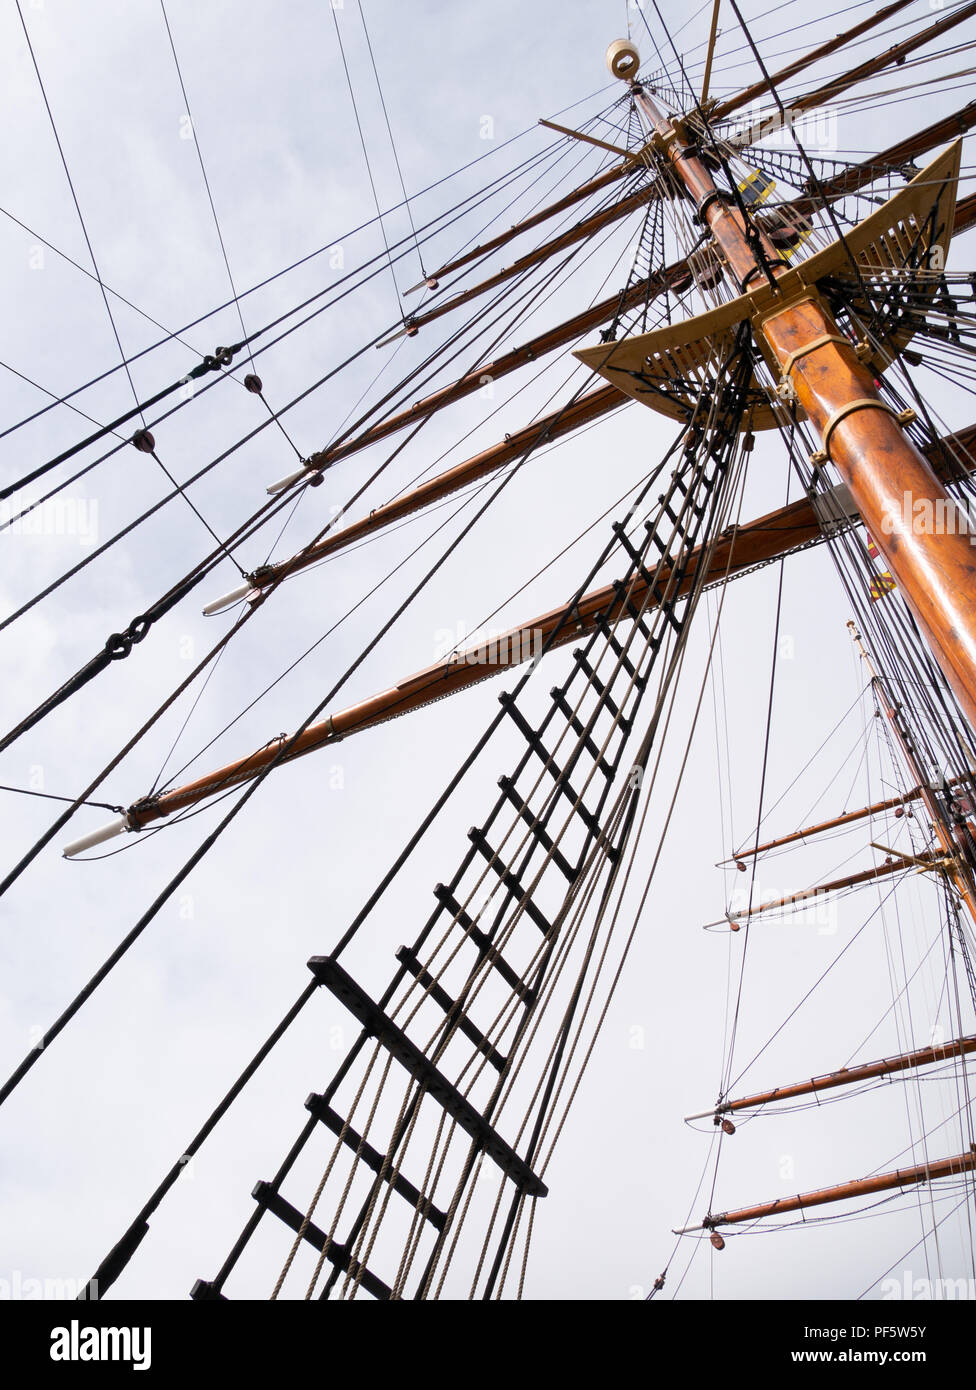 Mast and rigging on RRS Discovery, Captain Scott's Antarctic ship, Discovery Point, Dundee, Scotland, UK Stock Photo